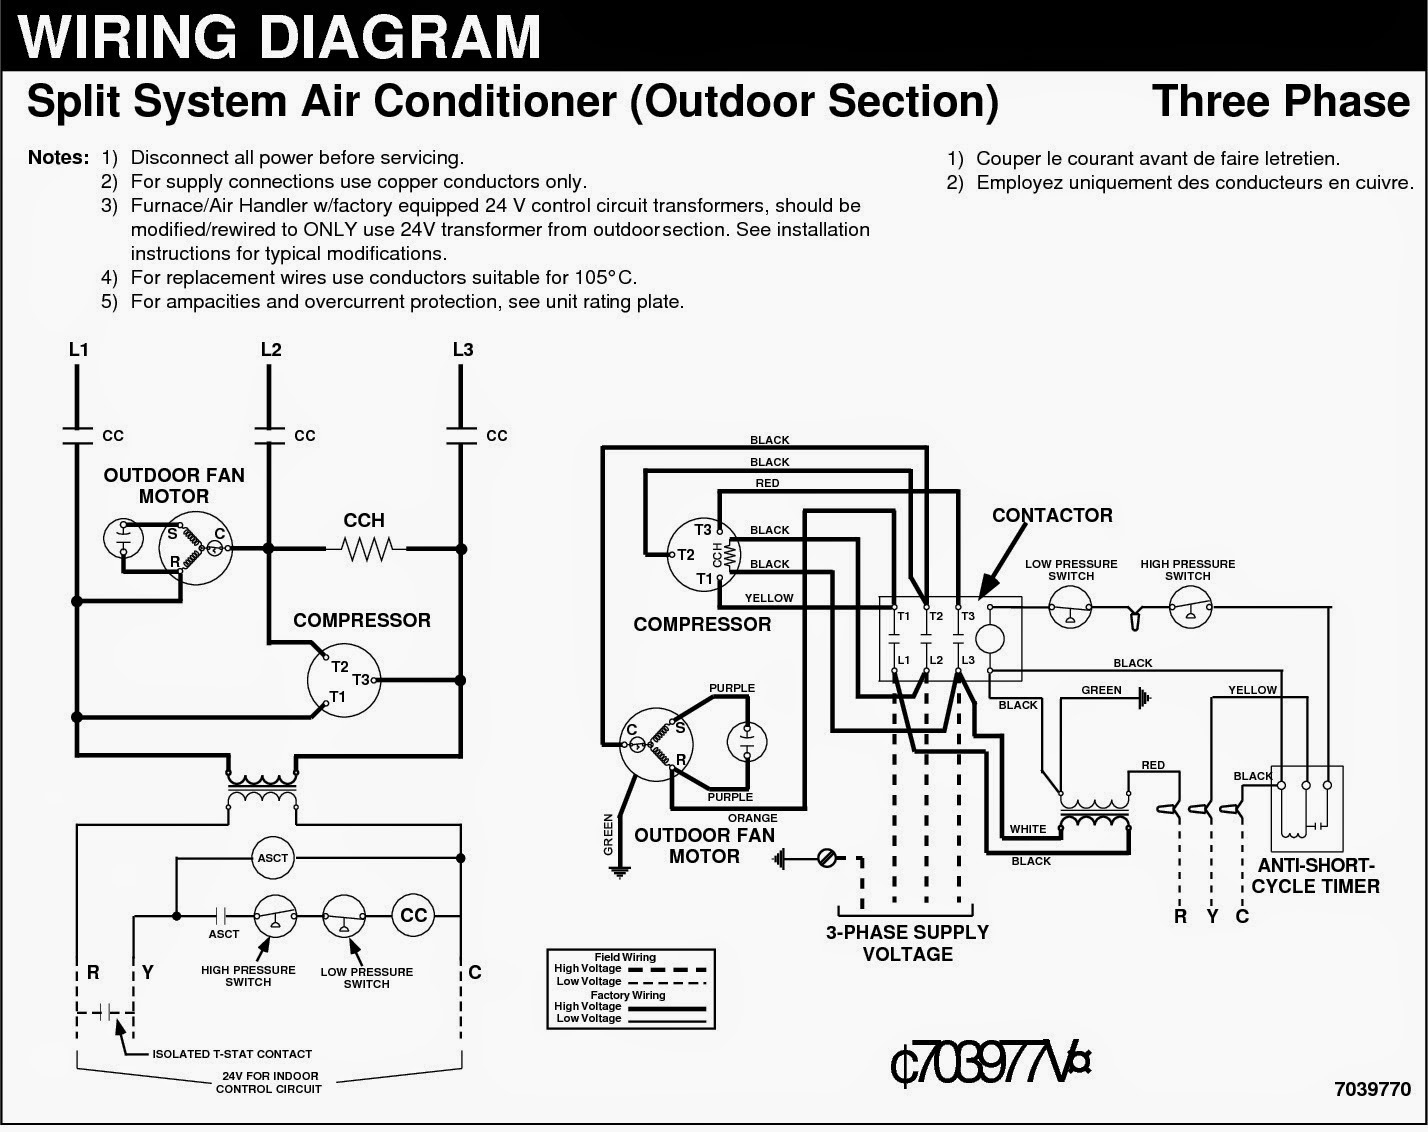 Central Ac Wiring Diagram Wiring Library